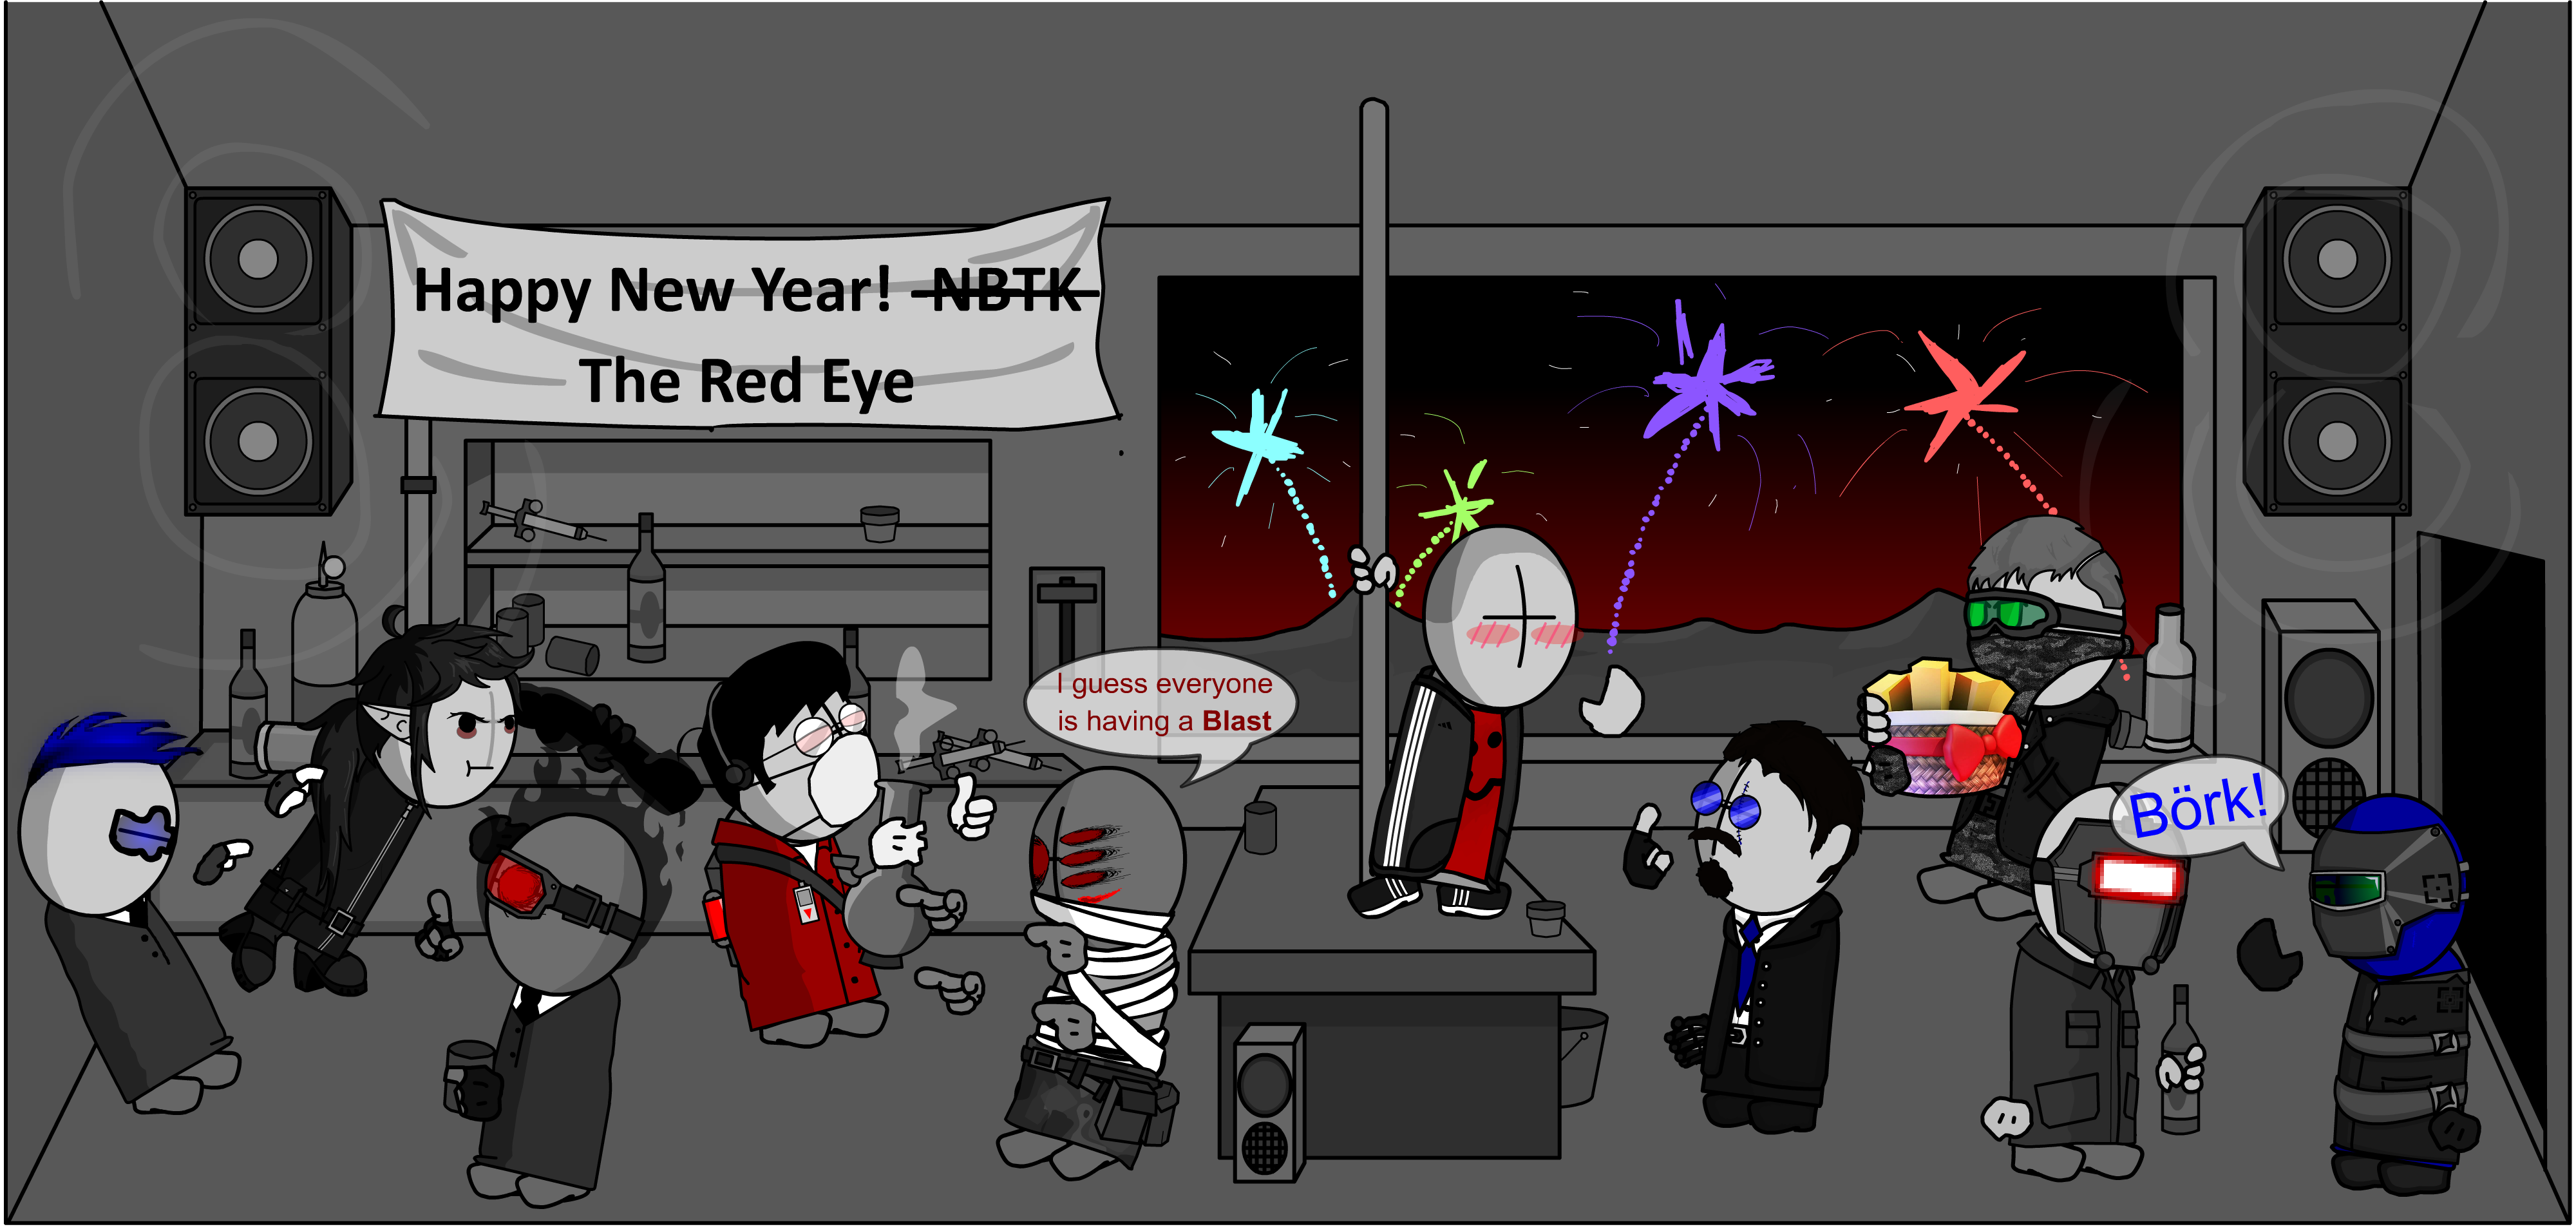 New years Postcard thinggy for some groupchat im in